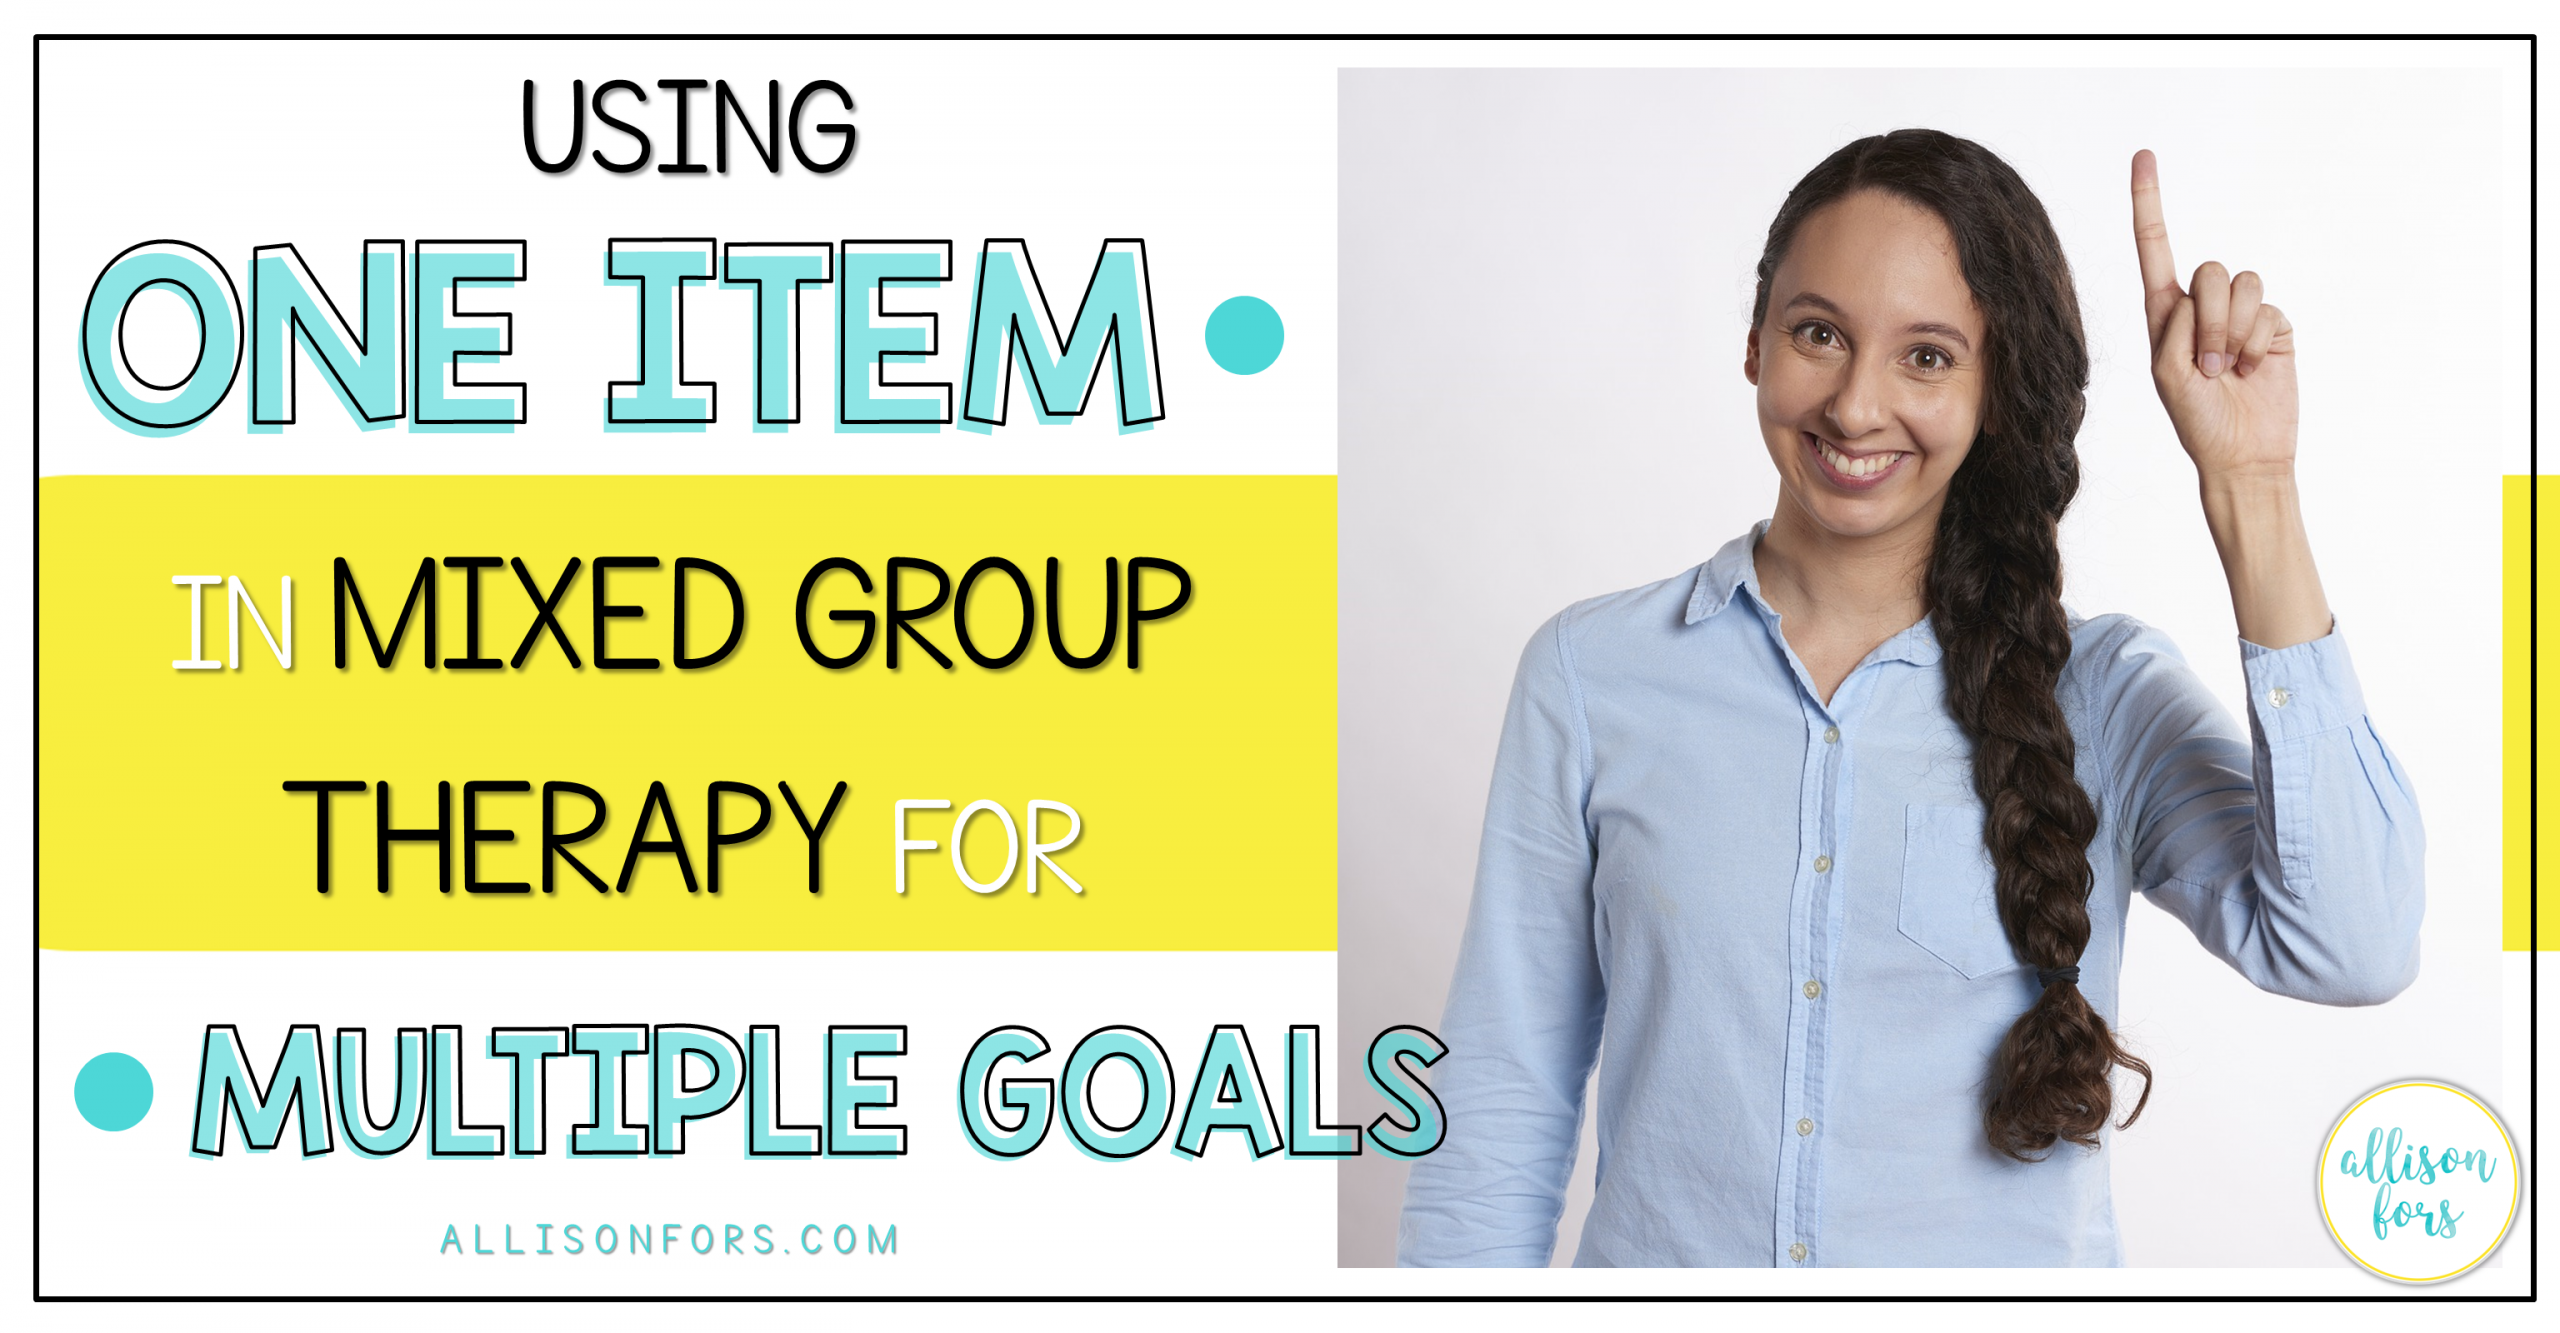 Using One Item in Mixed Therapy Groups for Multiple Goals